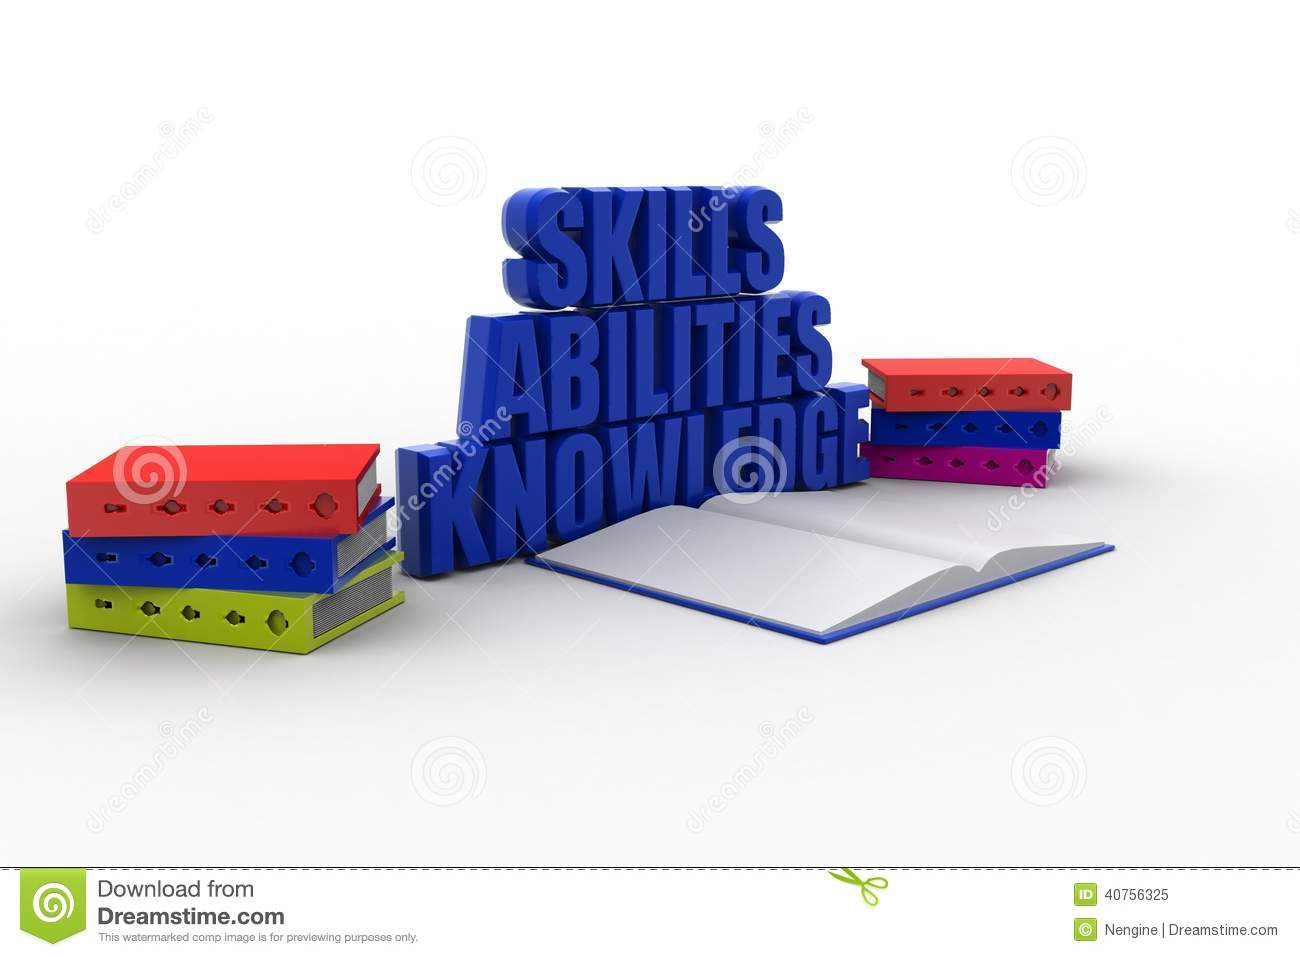 three qualities or criteria that are essential for a